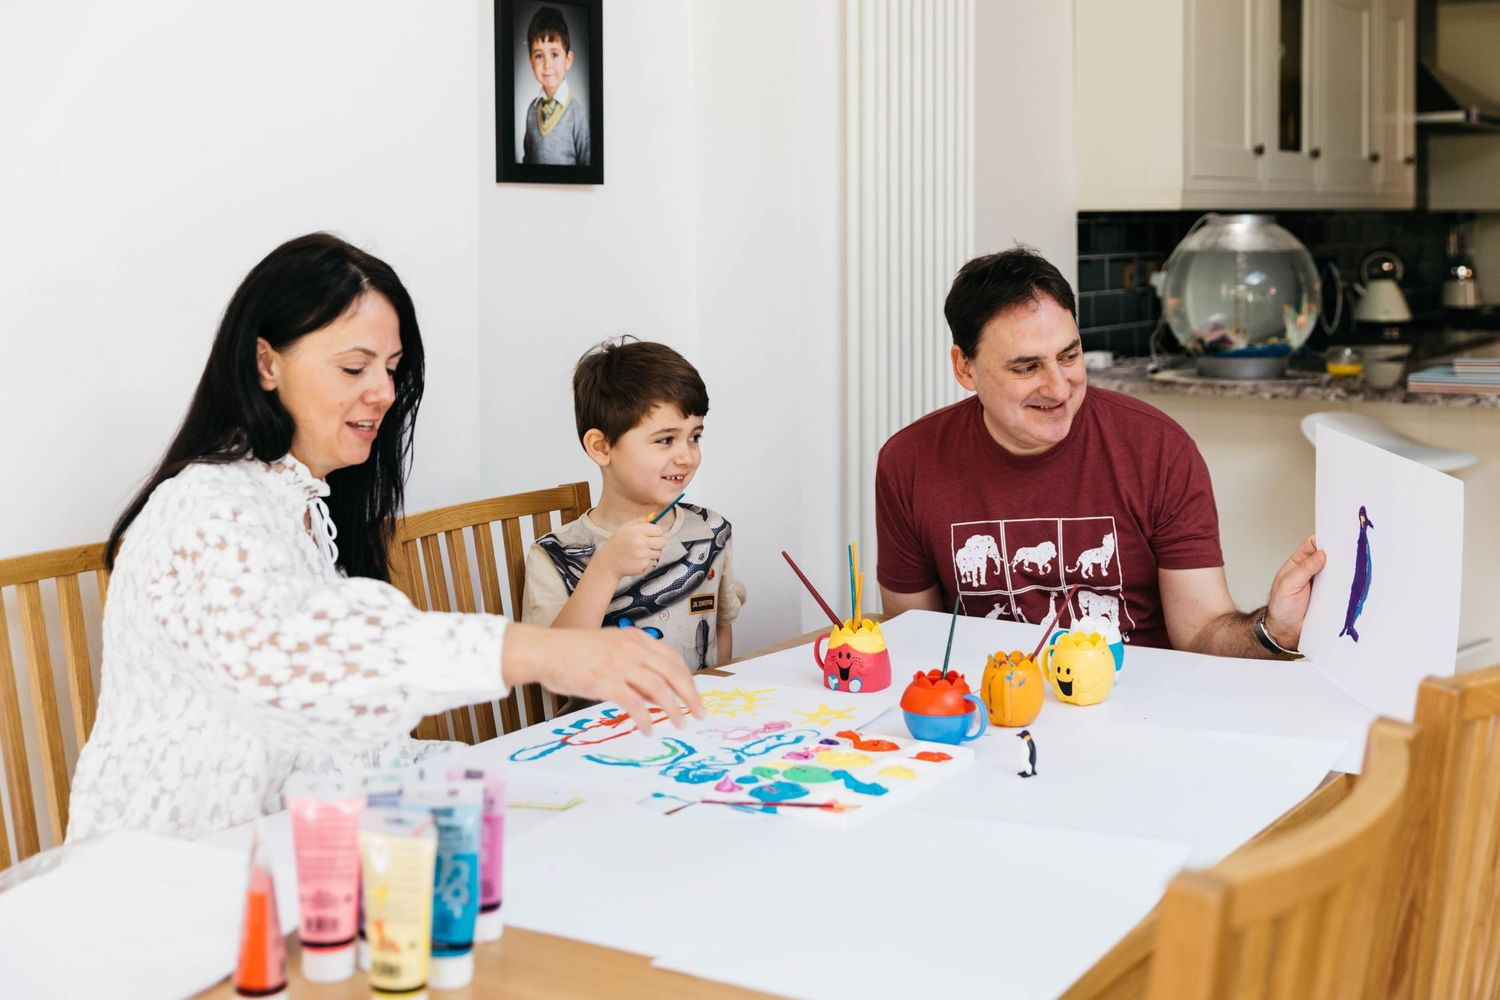 family of three at home with dog painting pictures at table